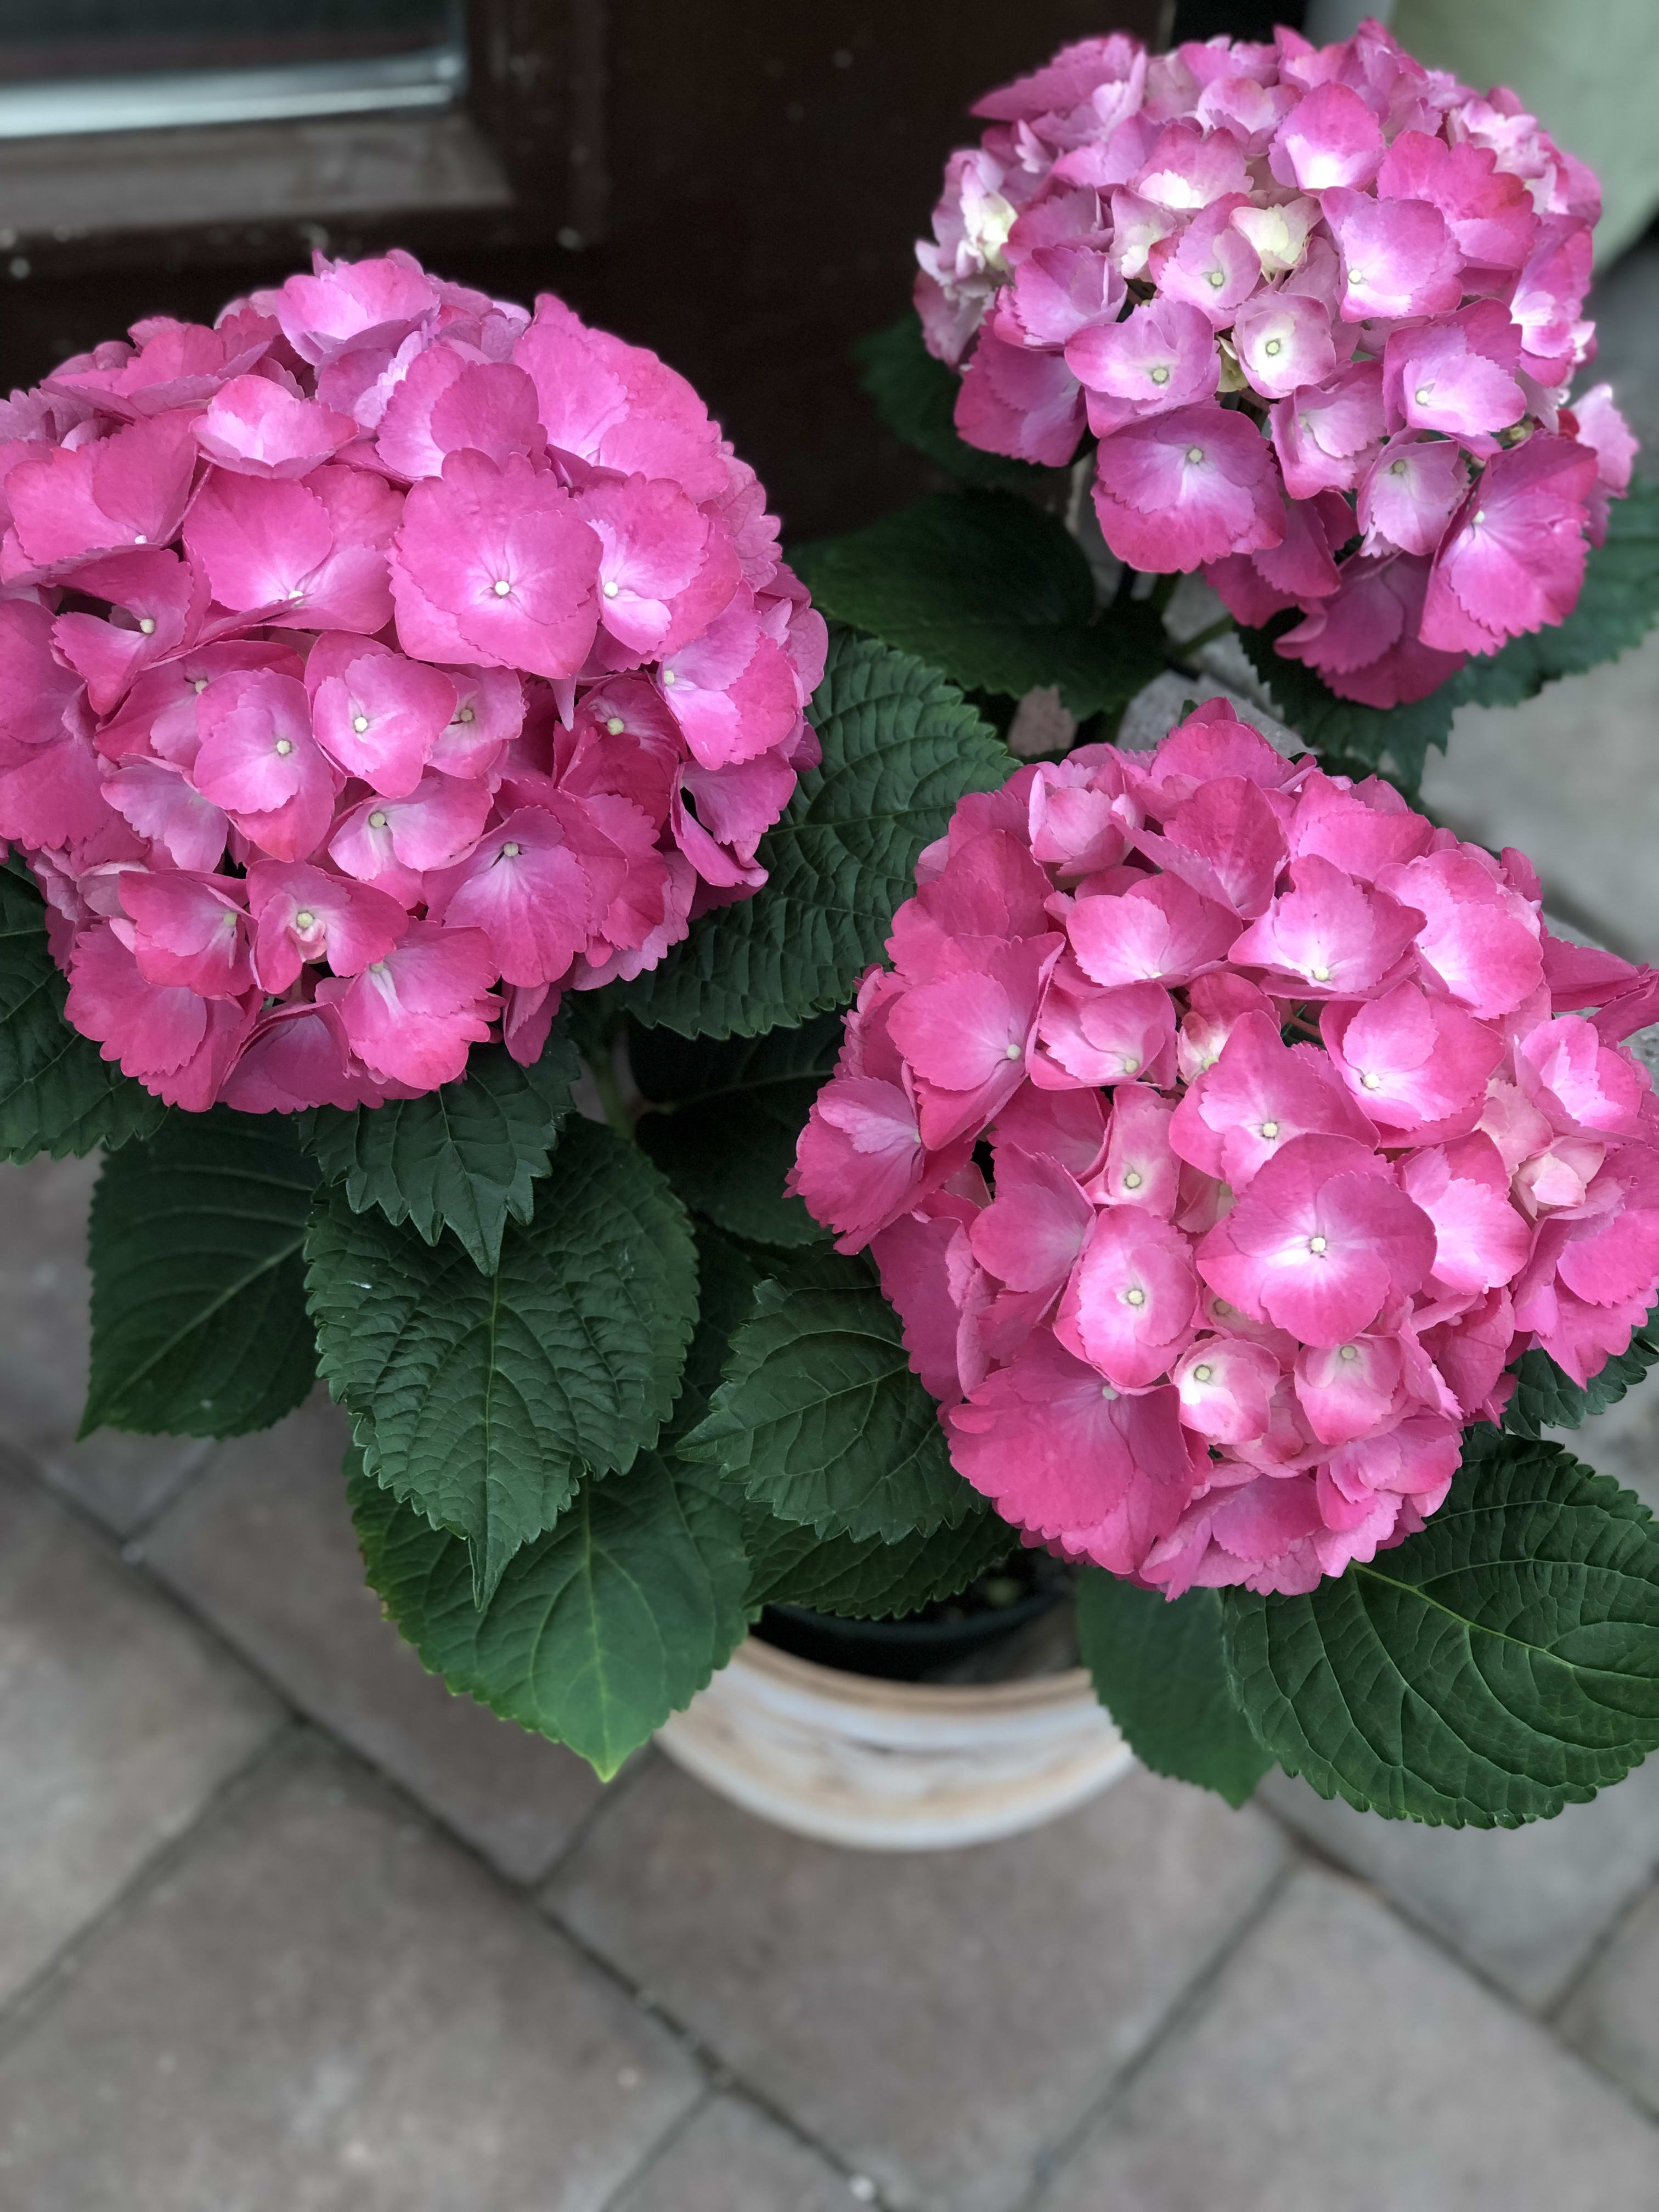 Blooming Plants Roses Hydrangeas Lilacs And More In Pottstown